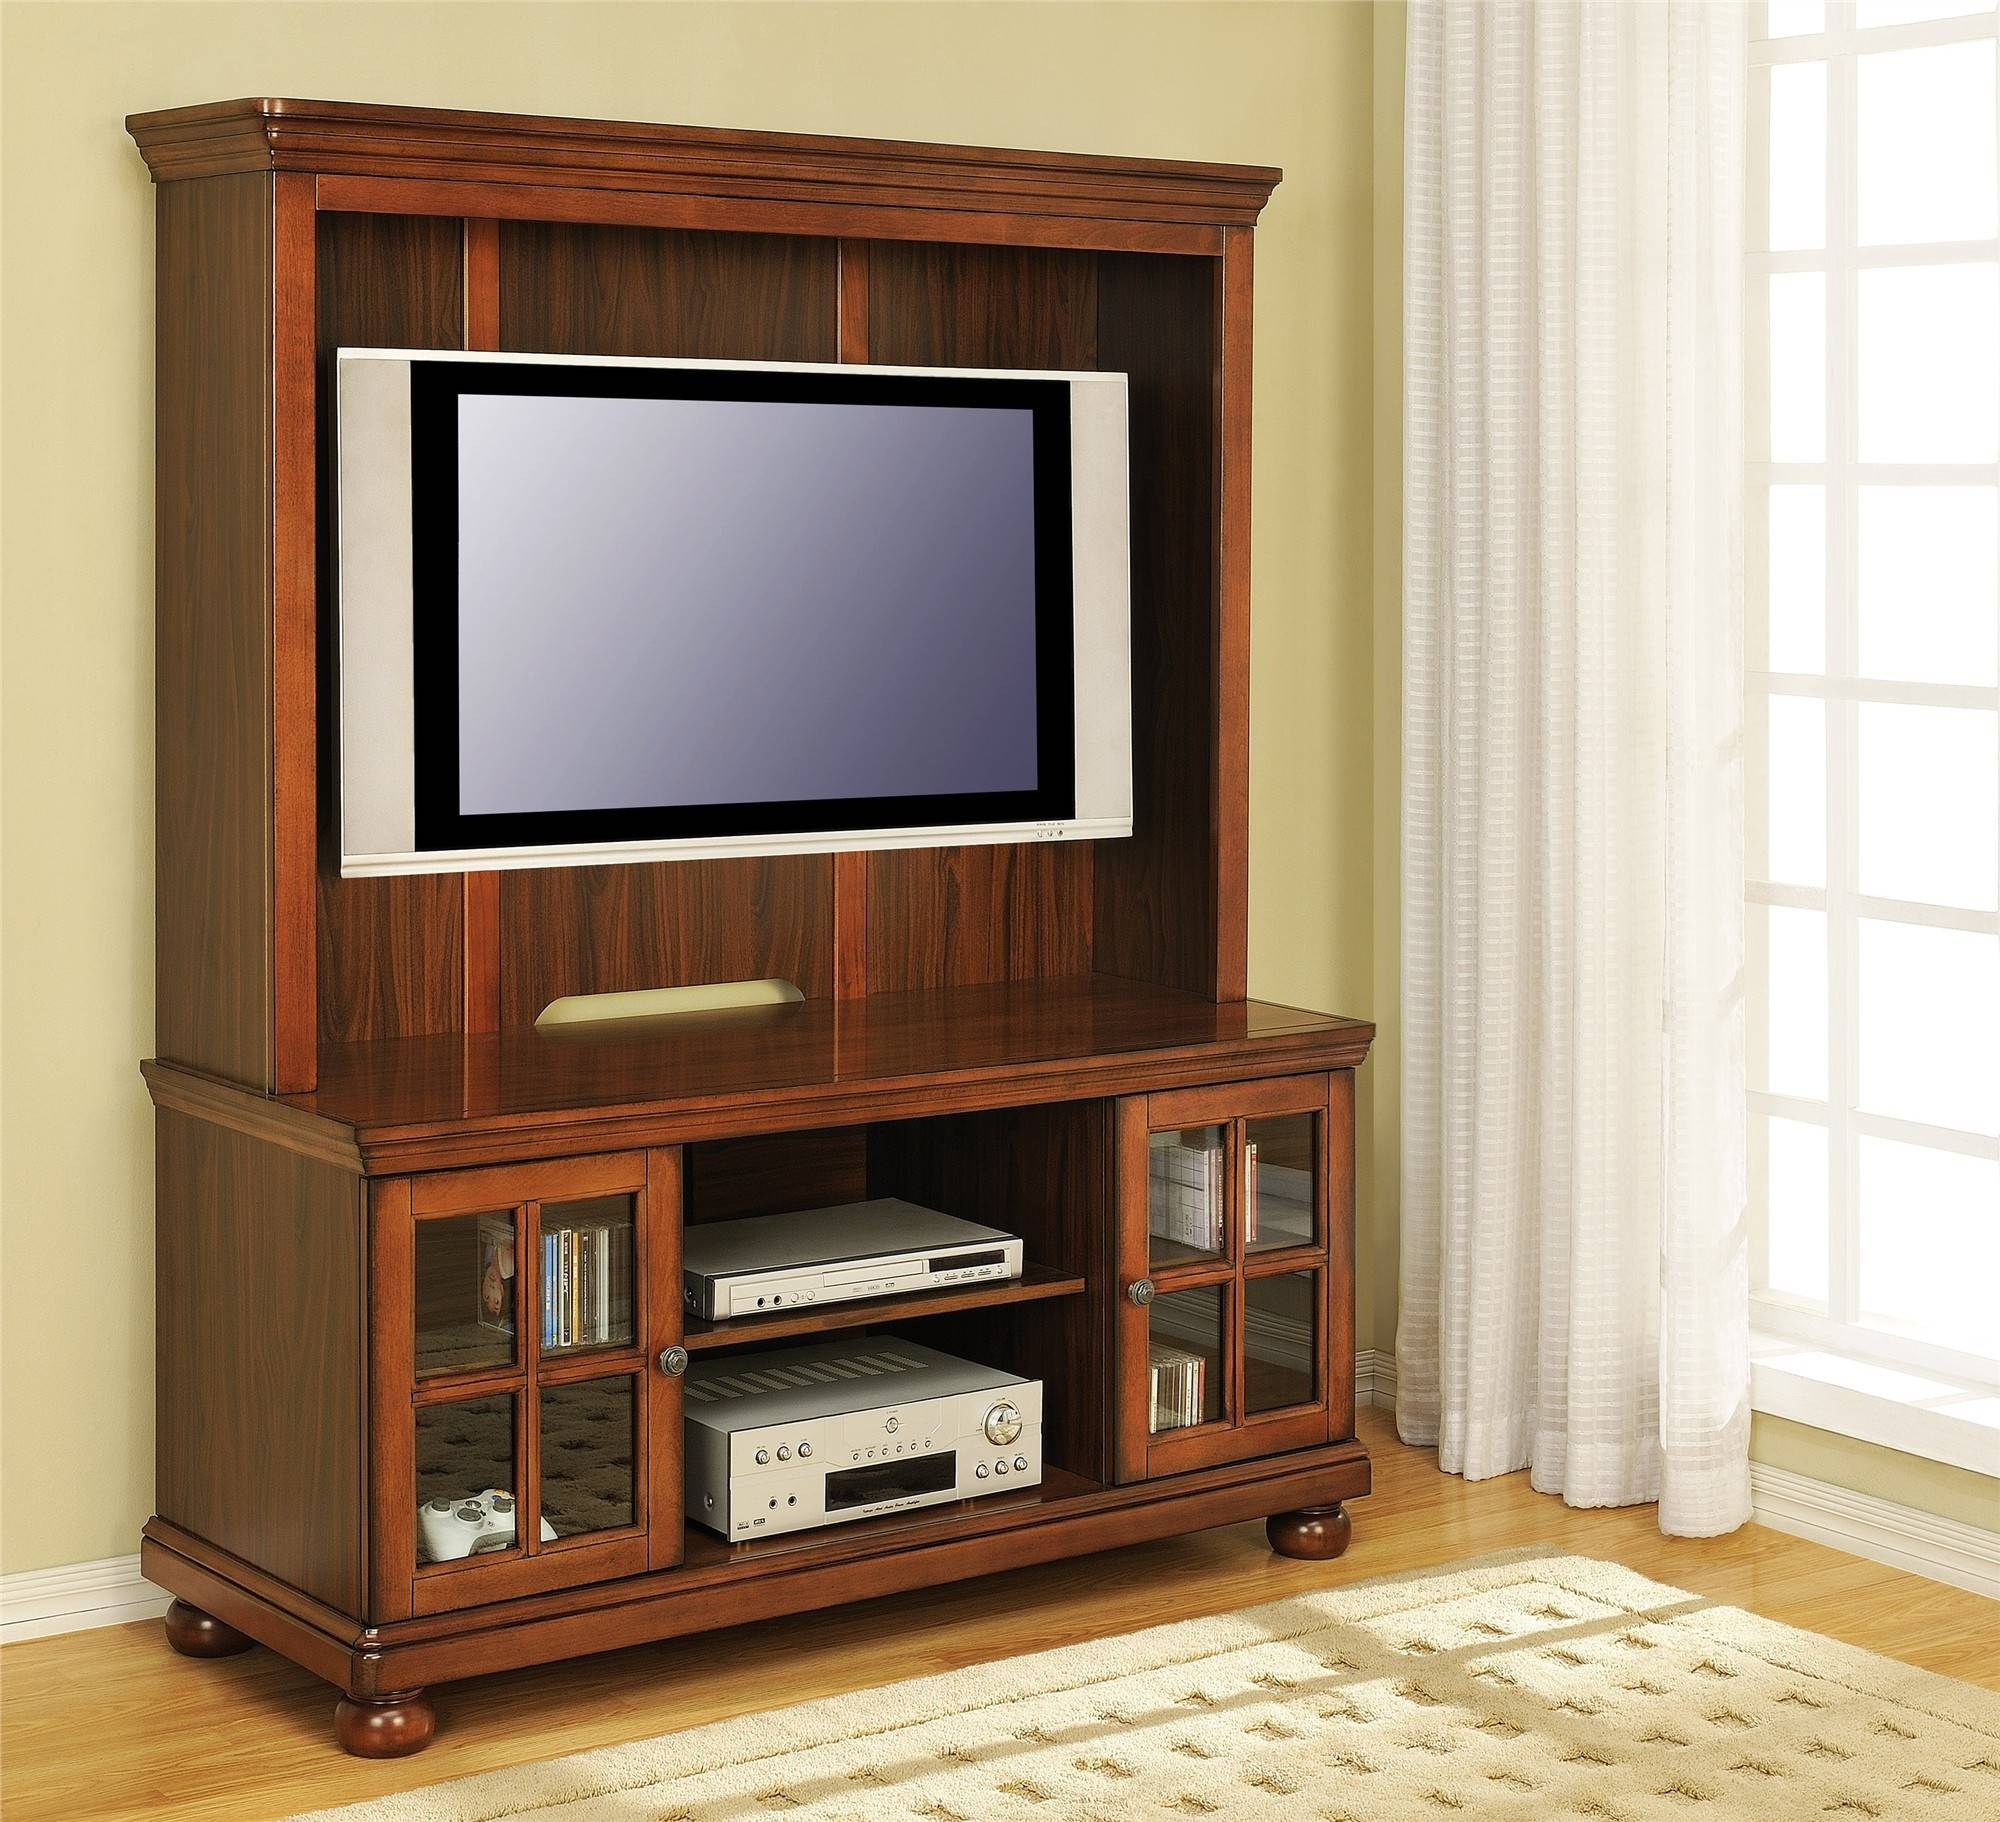 Inspirations of enclosed tv cabinets for flat screens